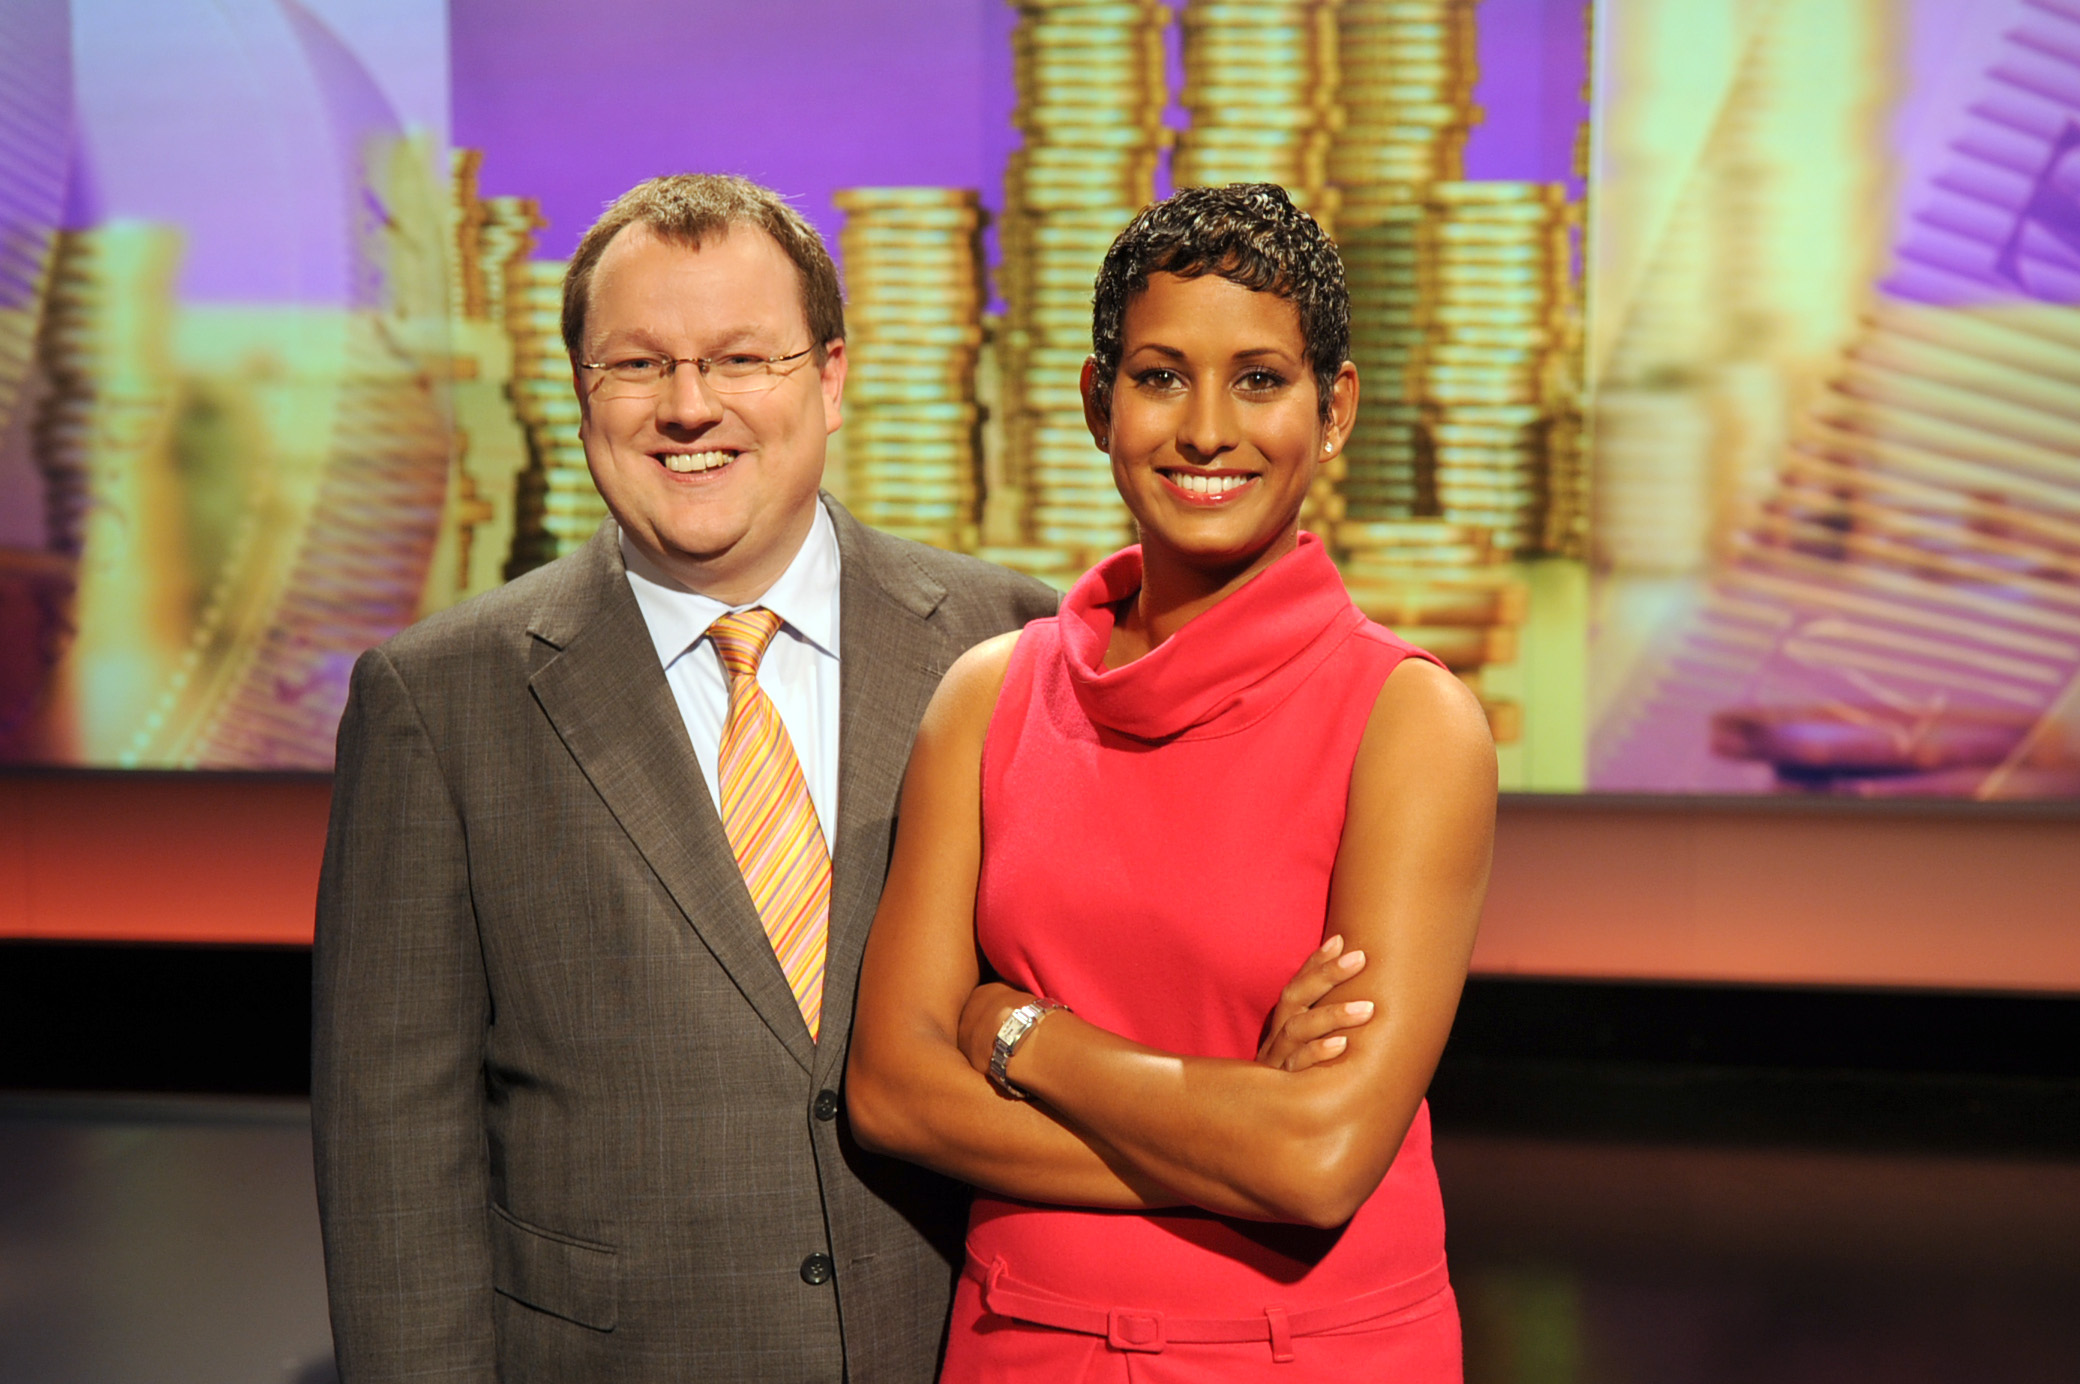 Declan Curry and bbc presenter naga munchetty